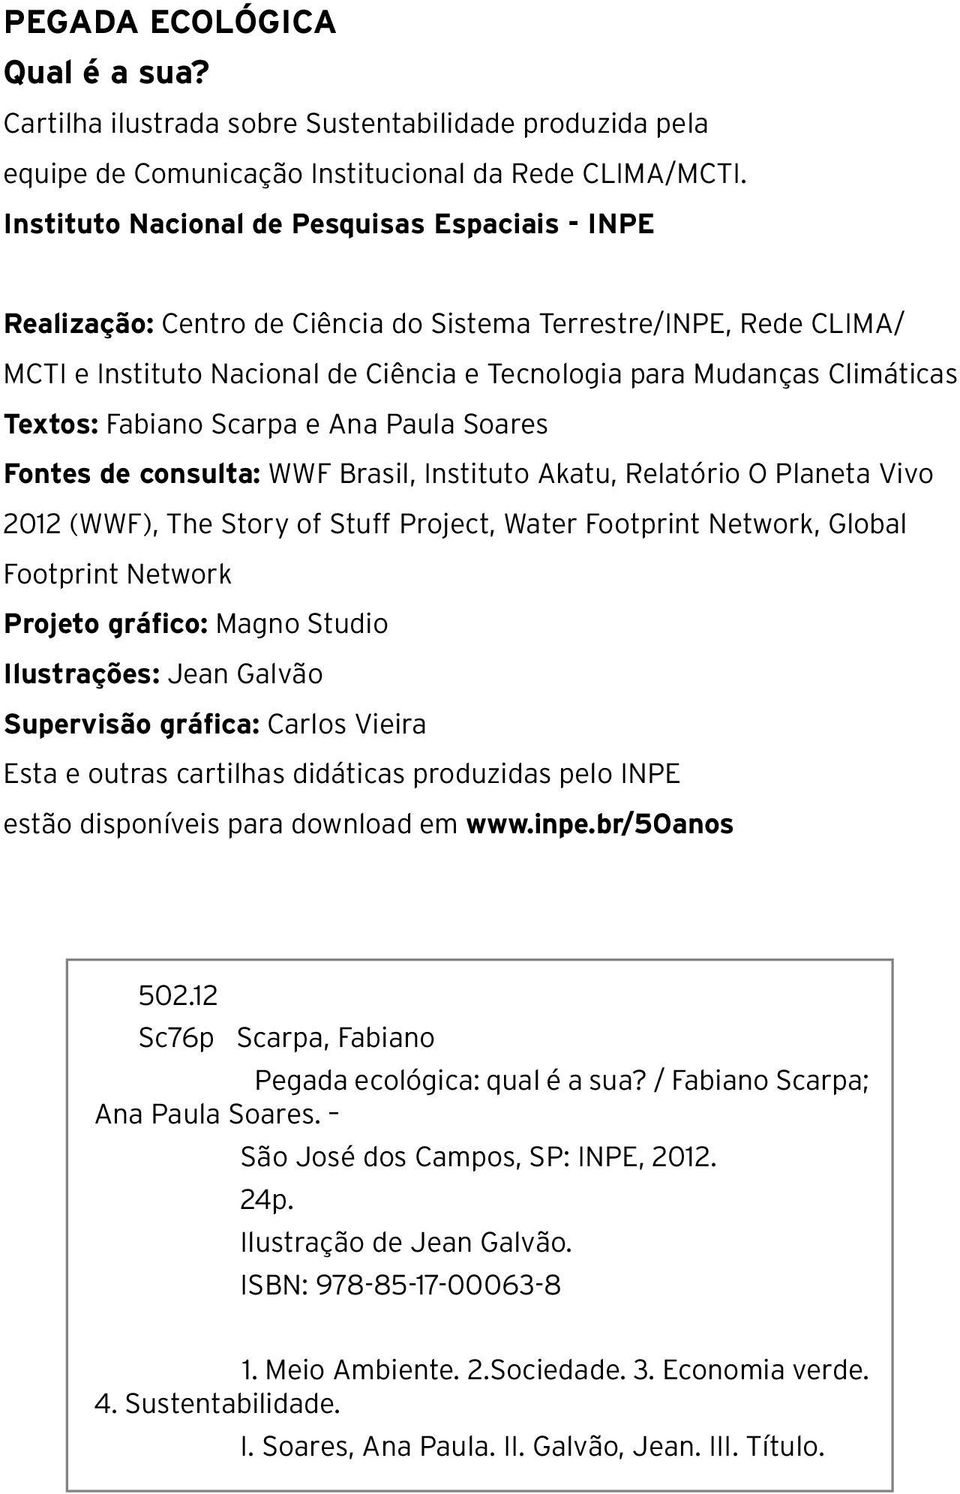 Textos: Fabiano Scarpa e Ana Paula Soares Fontes de consulta: WWF Brasil, Instituto Akatu, Relatório O Planeta Vivo 2012 (WWF), The Story of Stuff Project, Water Footprint Network, Global Footprint